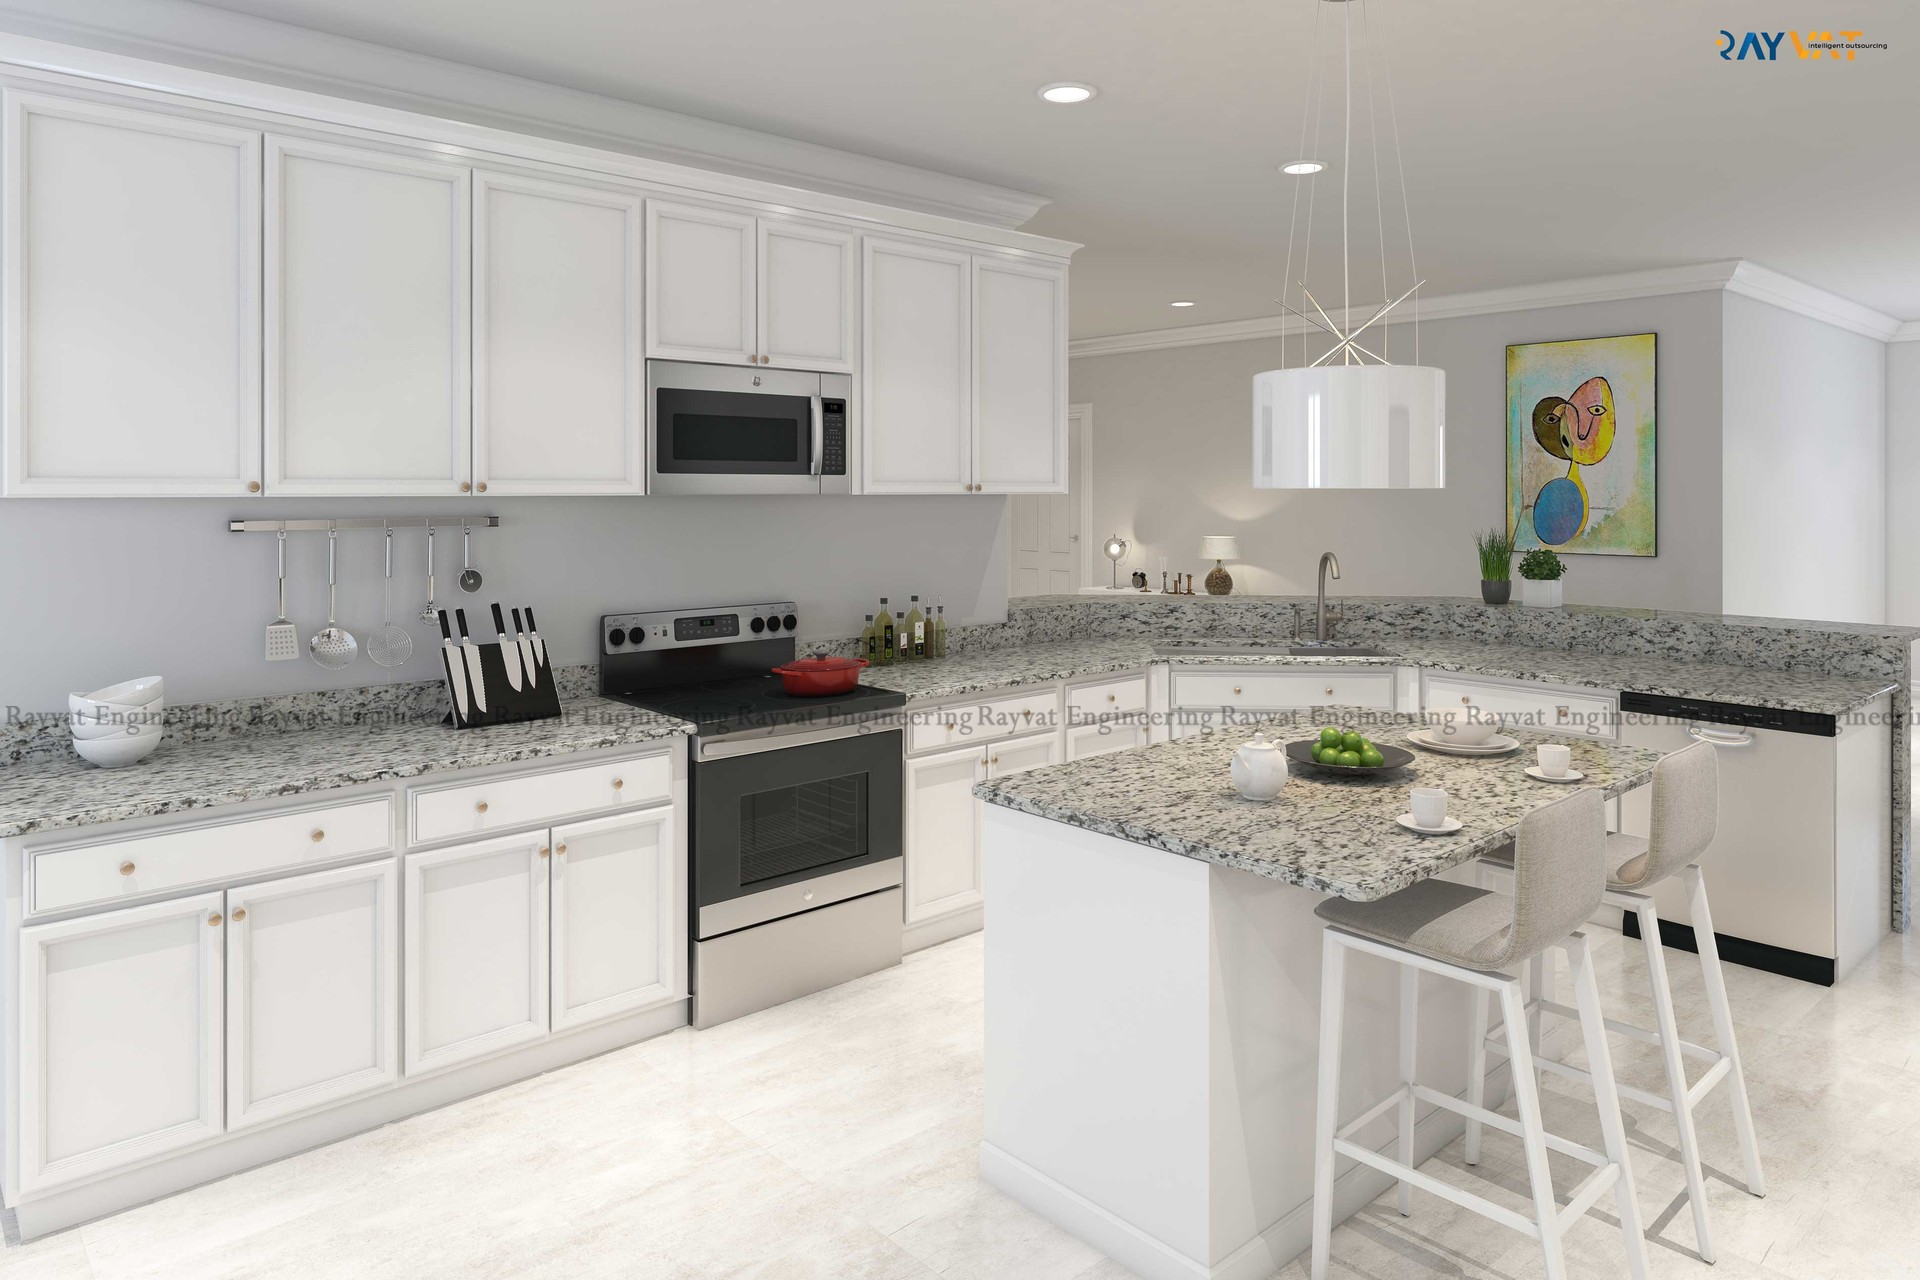 ArtStation - 3D Rendering of a Classic White Kitchen, Rayvat ...